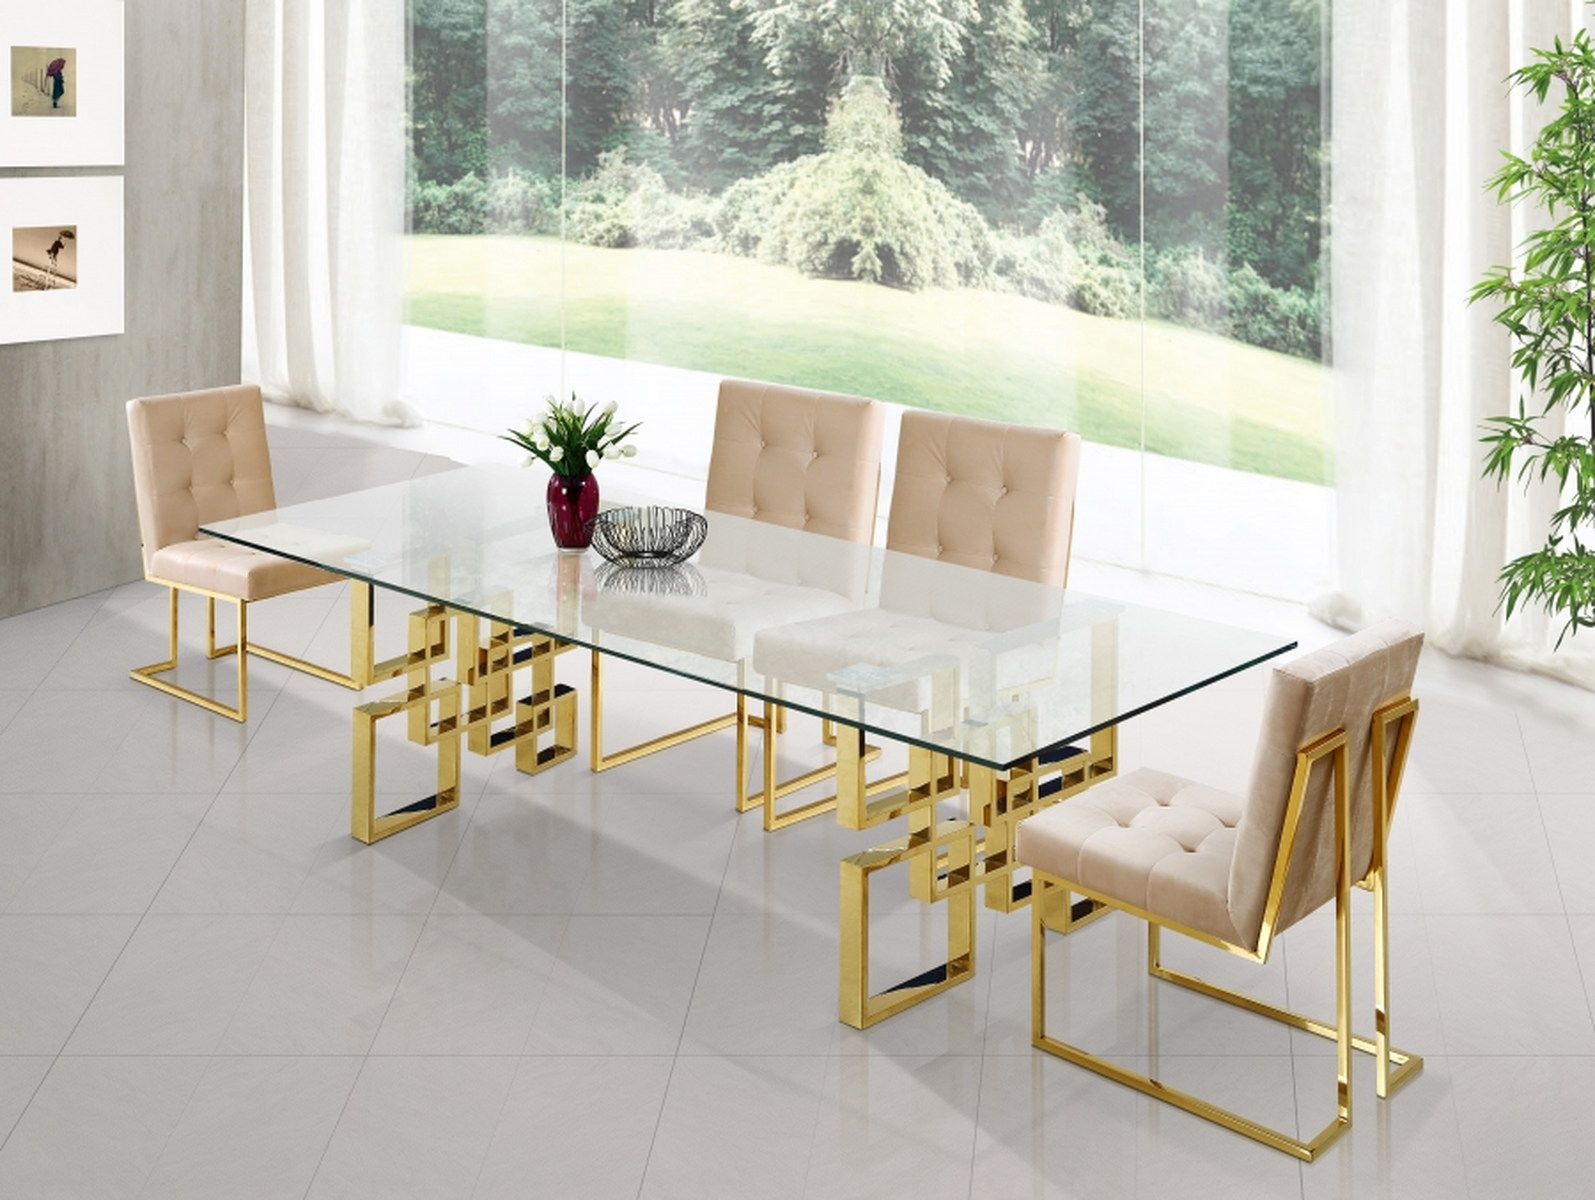 Meridian Furniture Pierre 5pcs Dining Room Set In Rich Gold Stainless Steel By Dining Rooms Outlet